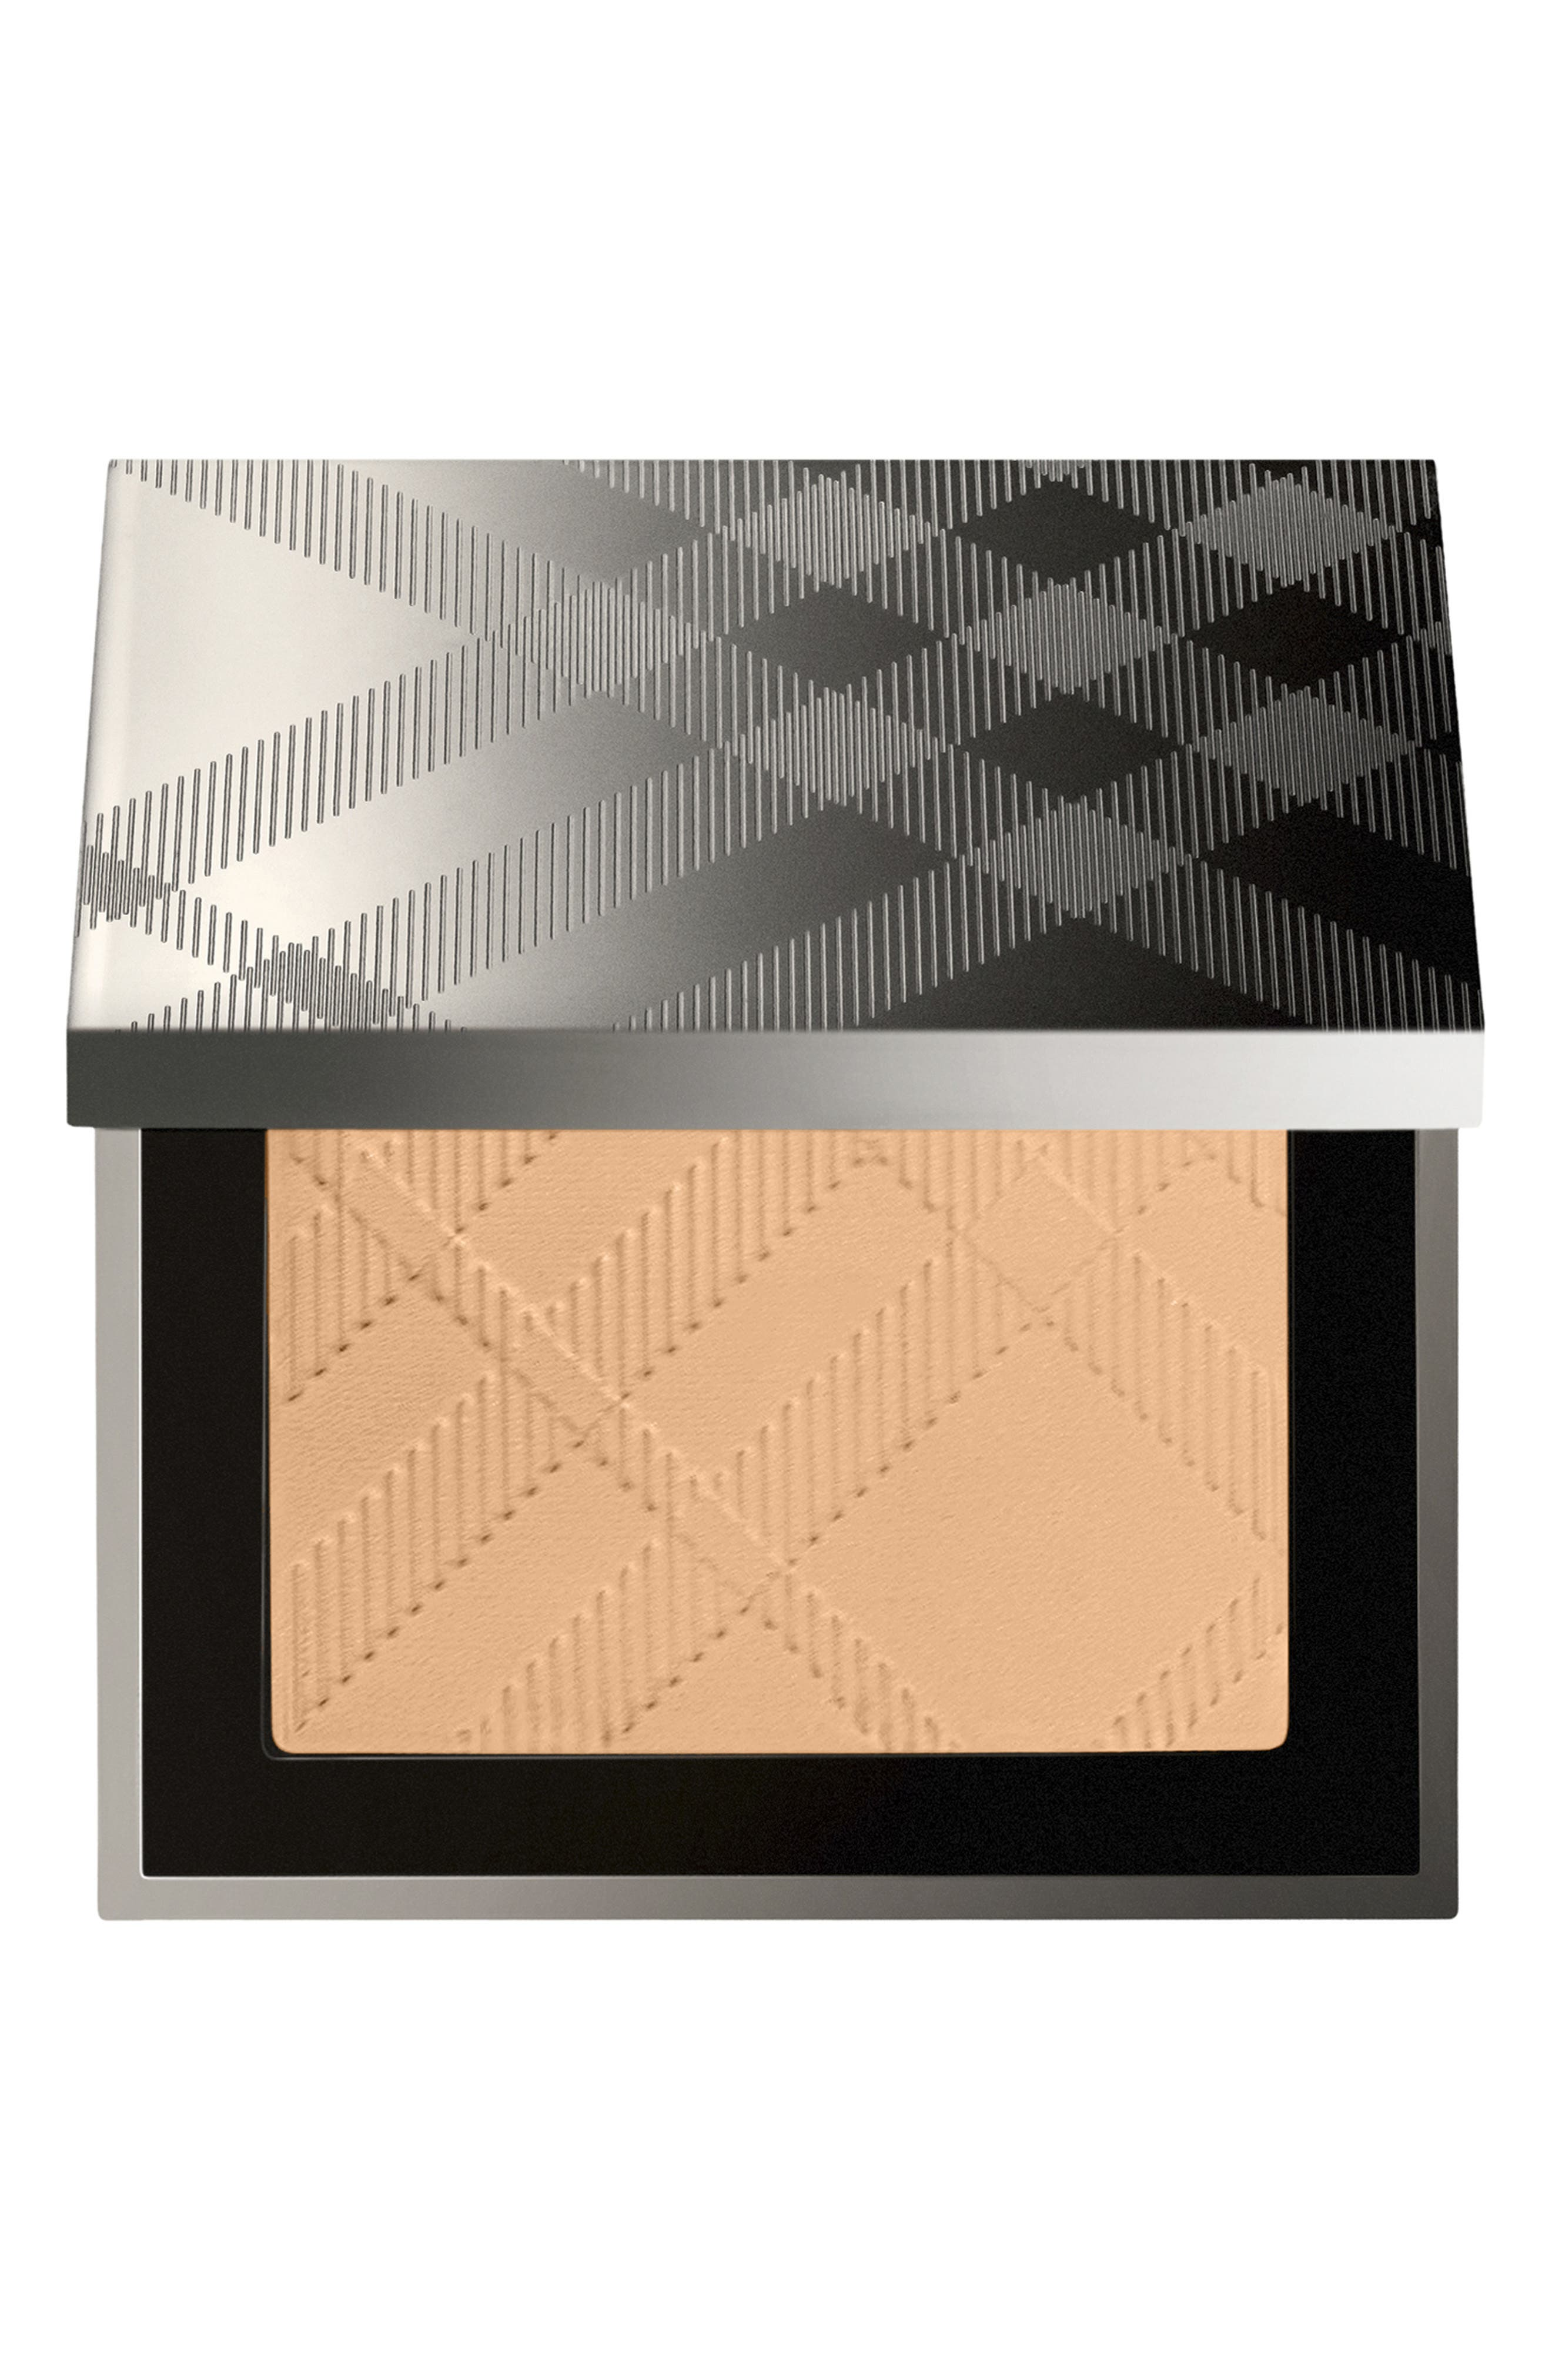 Nude Glow Pressed Powder,                             Main thumbnail 1, color,                             NO. 12 OCHRE NUDE